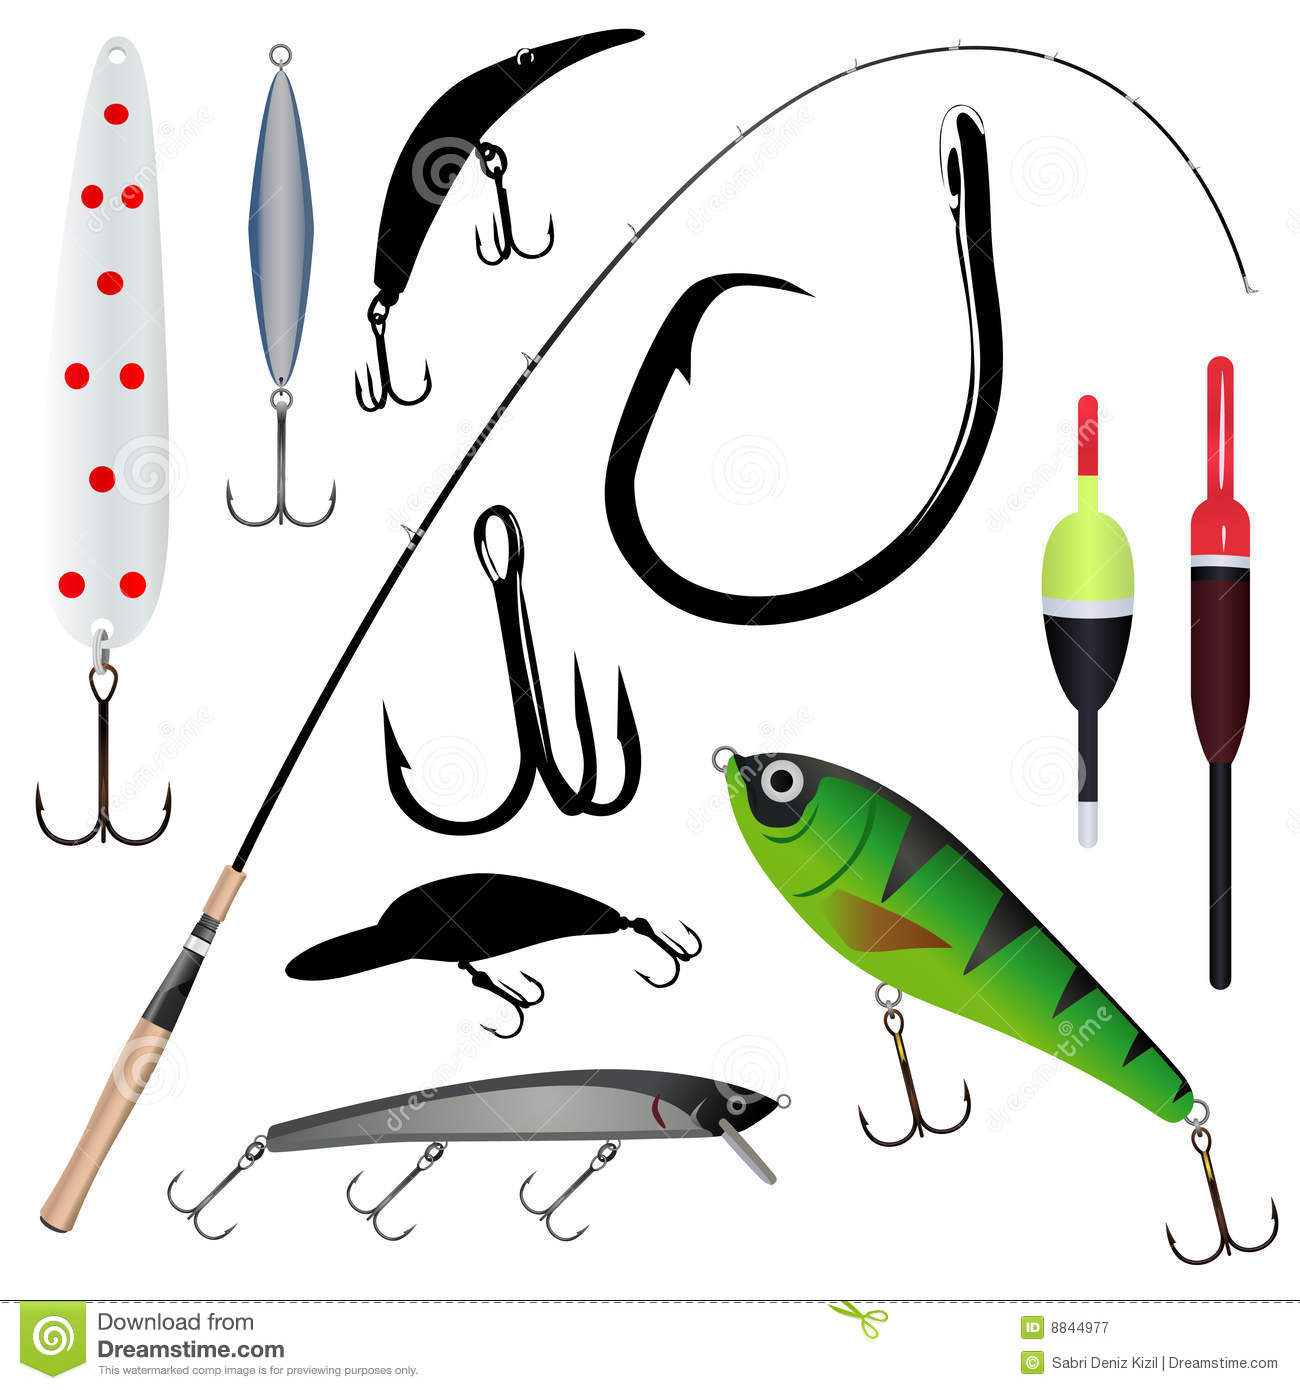 Fishing rod hook royalty free stock photography image for How to get free fishing gear